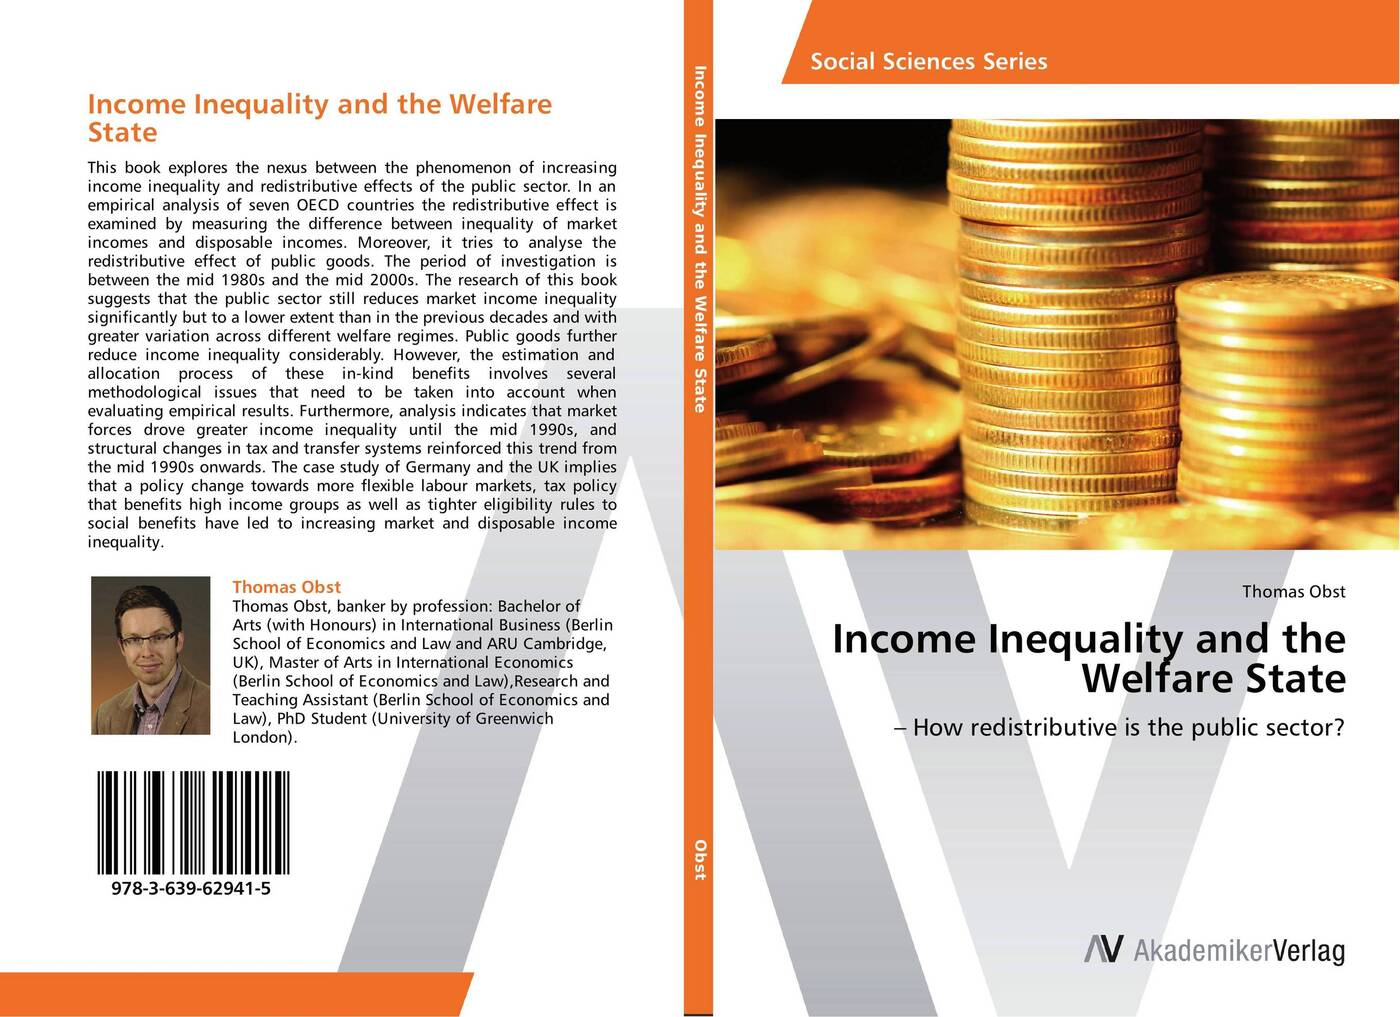 Thomas Obst Income Inequality and the Welfare State how public policy impacts racial inequality